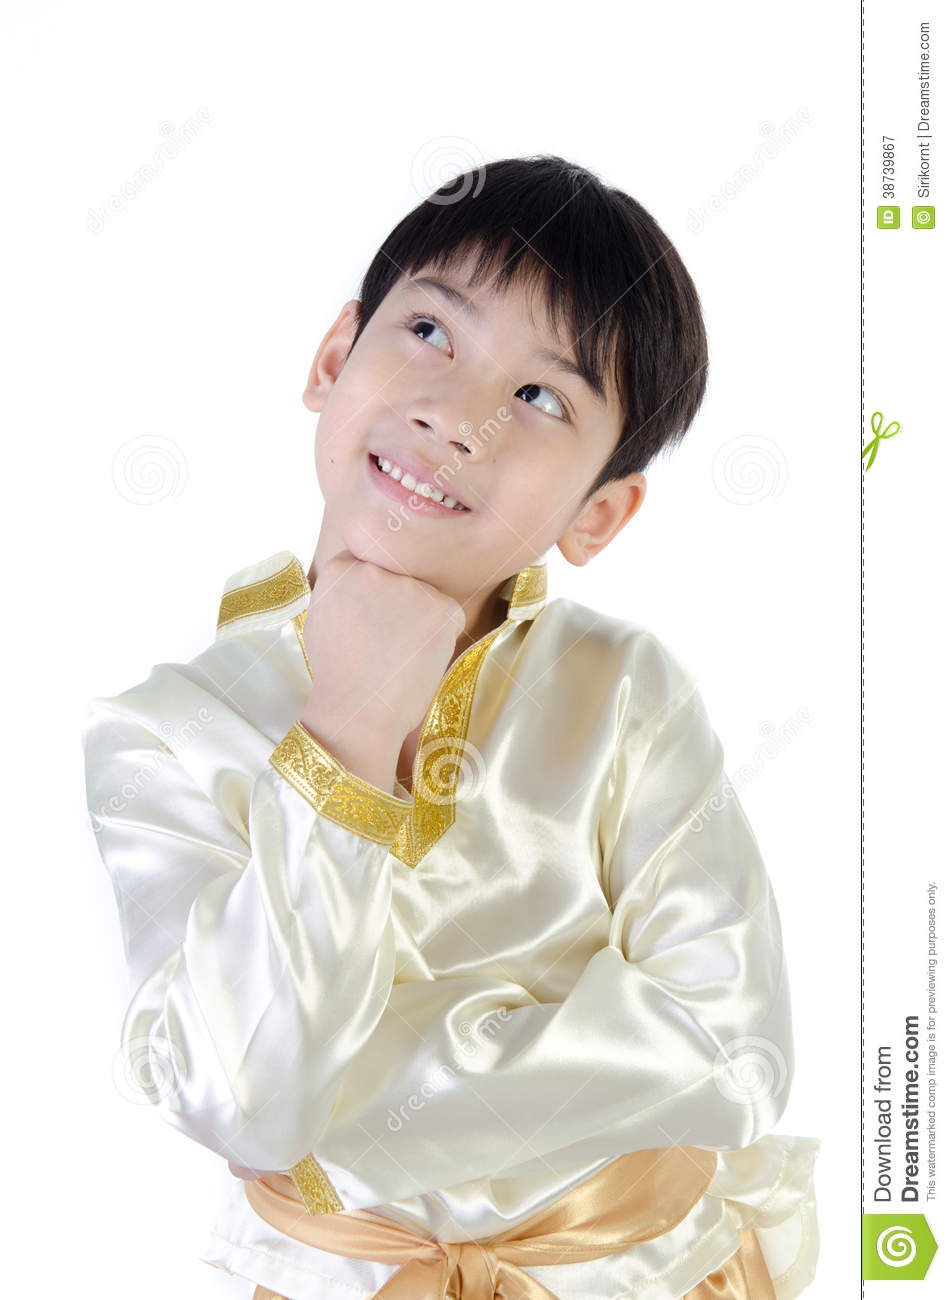 cad9eae7ba8e9 Asian cute boy in thai costume acting think about that on white background  . More similar stock images